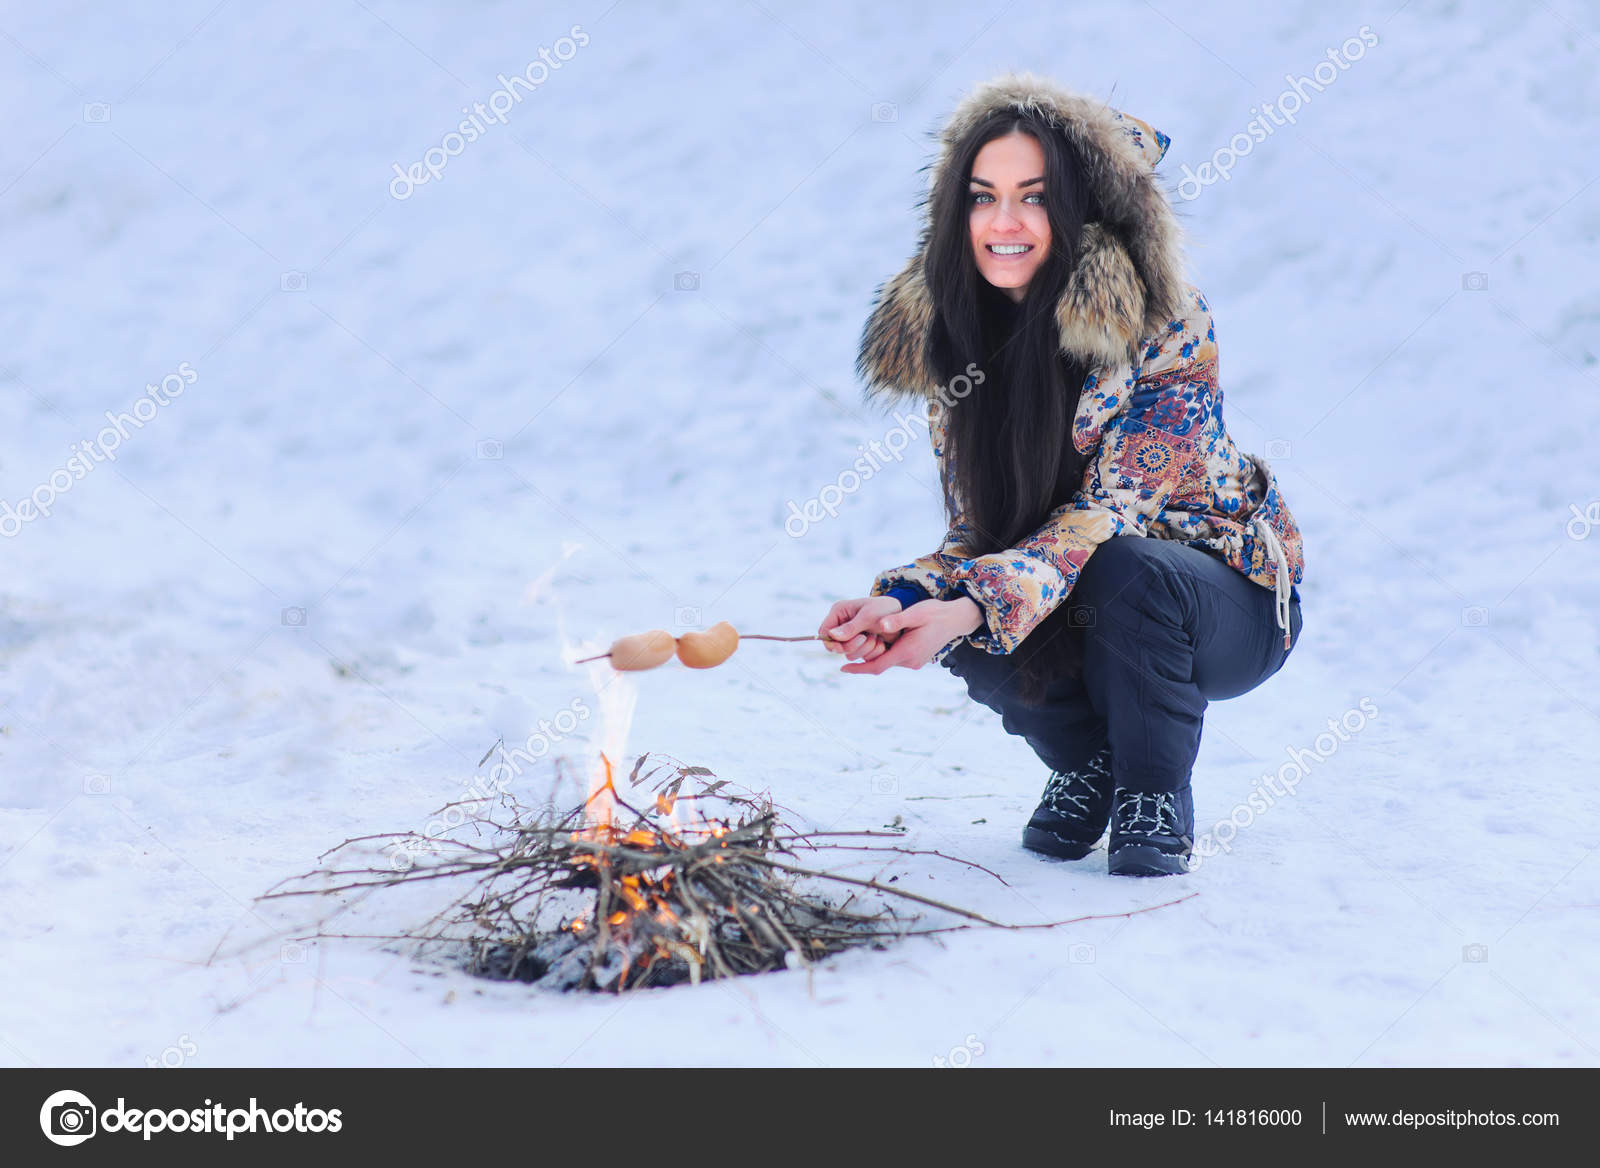 depositphotos_141816000-stock-photo-outdoors-winter-barbecue-woman-cooking.jpg